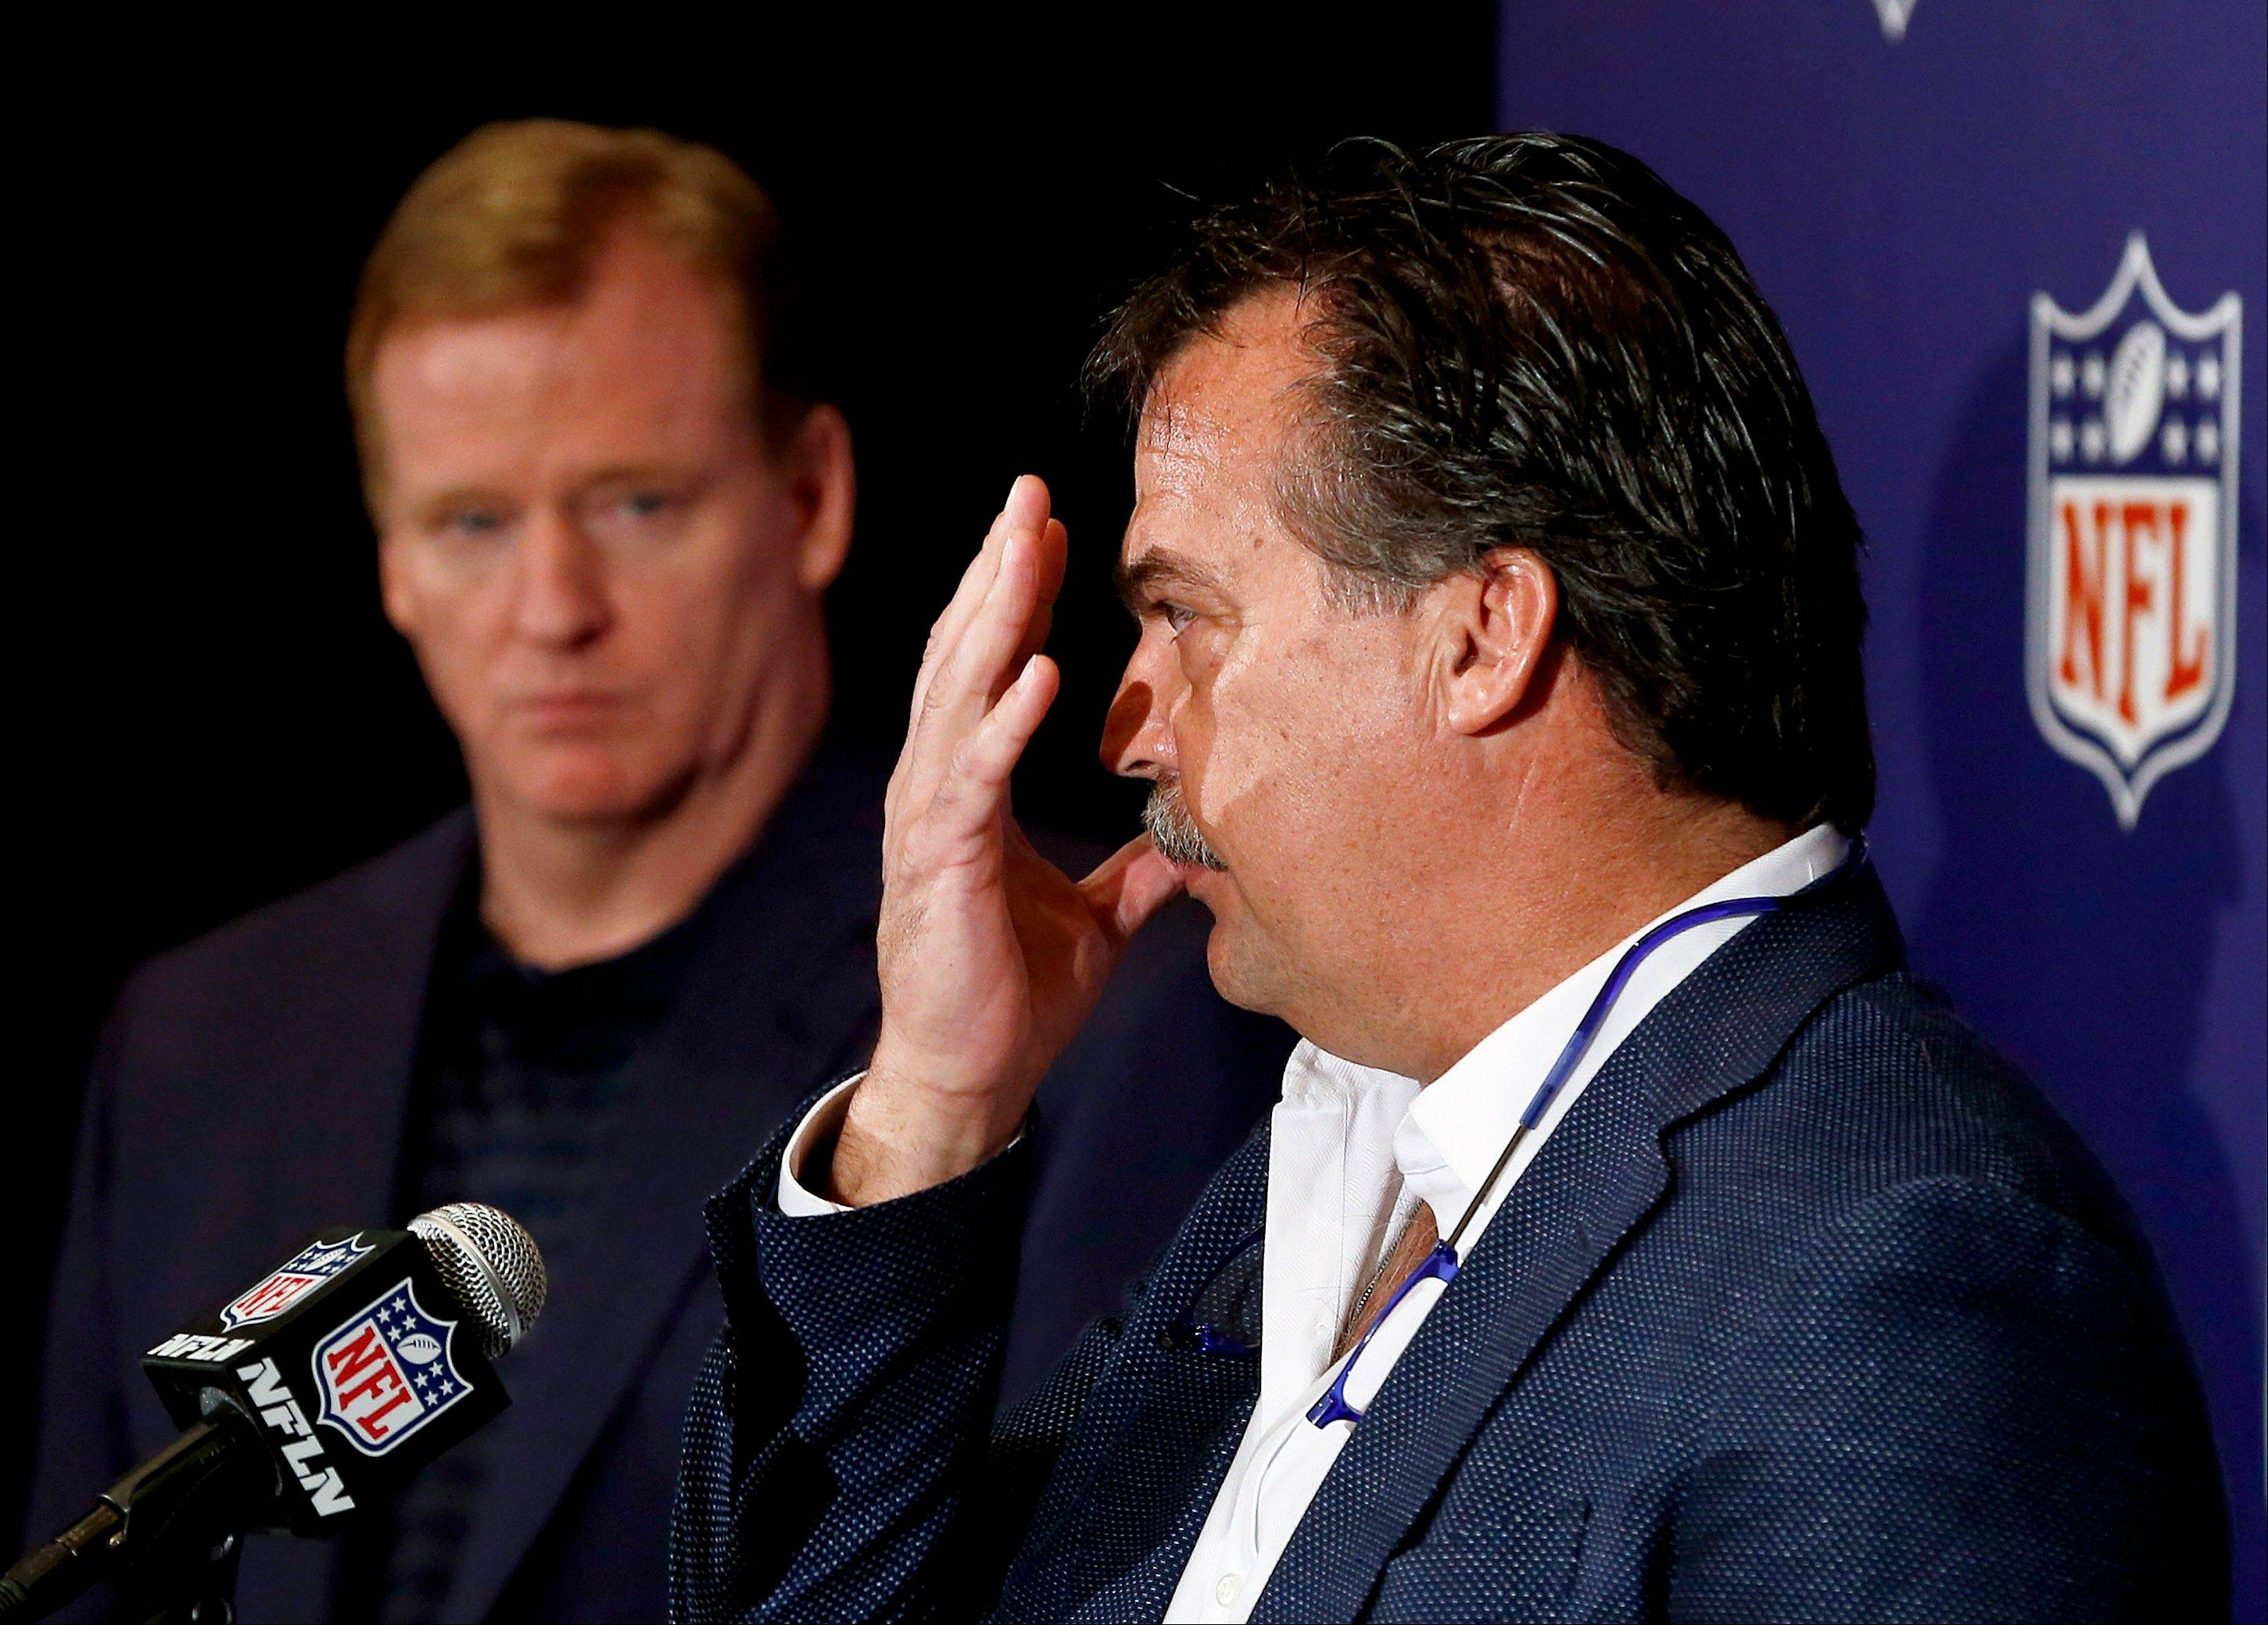 St. Louis Rams head coach and co-chairman of the NFL competition committee Jeff Fisher, right, speaks as NFL Commission Roger Goodell, left, watches at the annual NFL football meetings at the Arizona Biltmore, Wednesday, March 20, 2013, in Phoenix. Fisher explained a new rule passed by NFL owners barring ball carriers from using the crown of their helmets to make forcible contact with a defender in the open field.